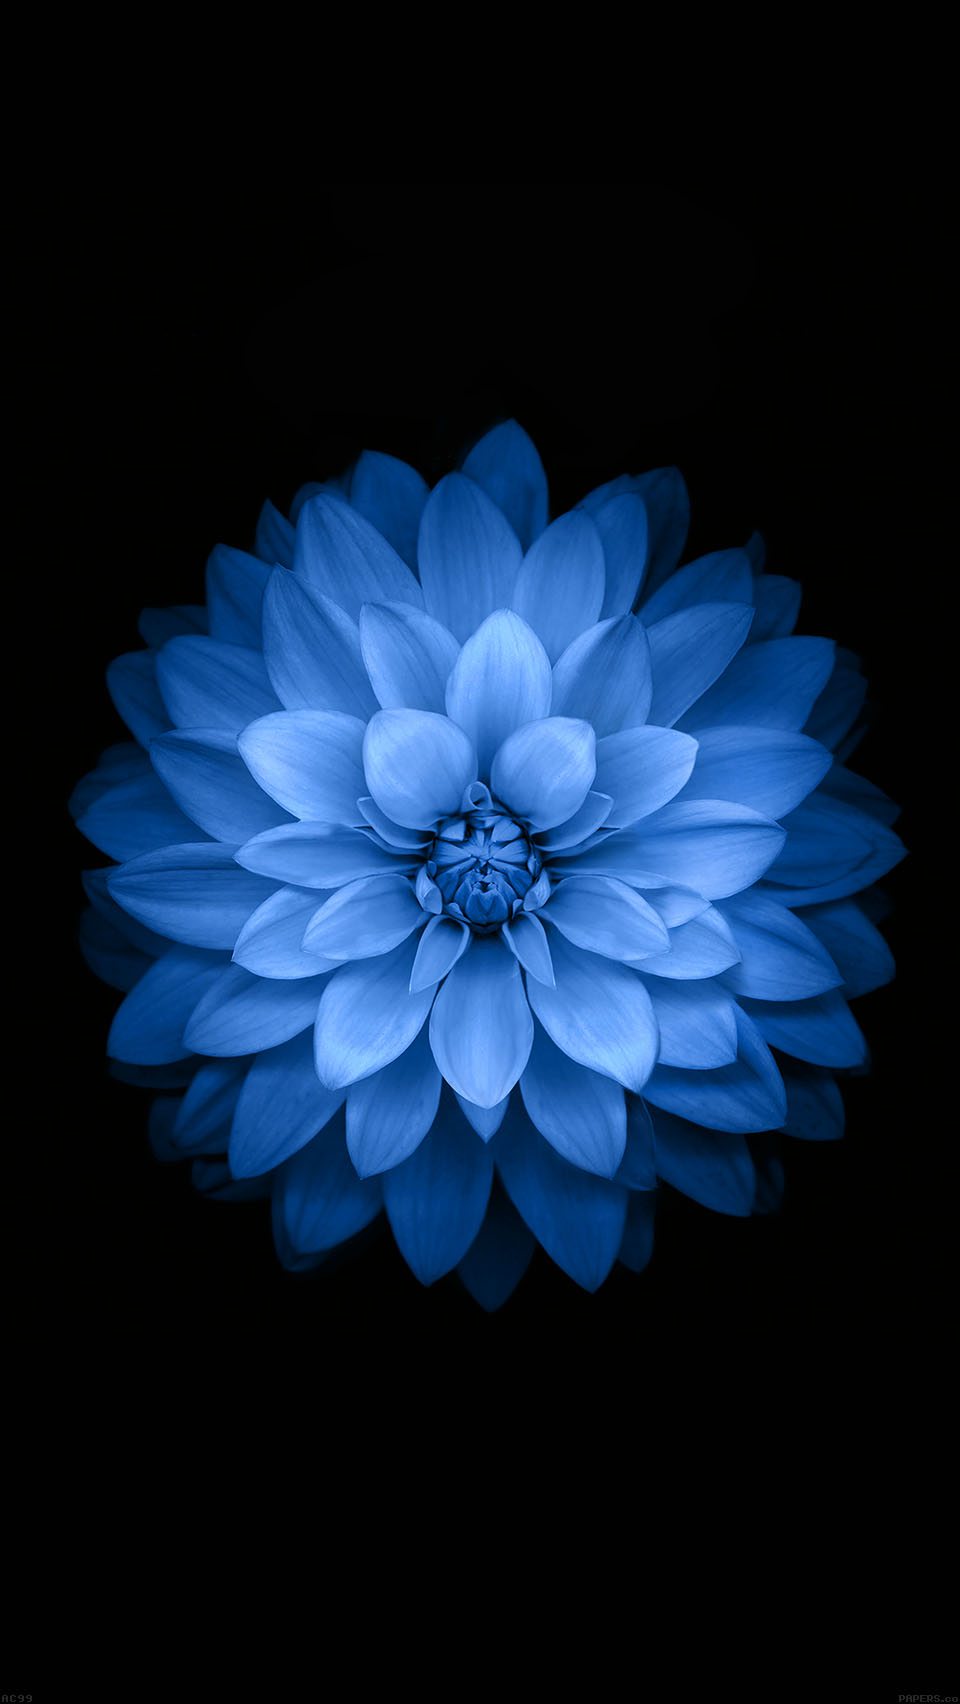 Blue Lotues iOS 8 Wallpaper Variant iPhone 6 Blue Lotues